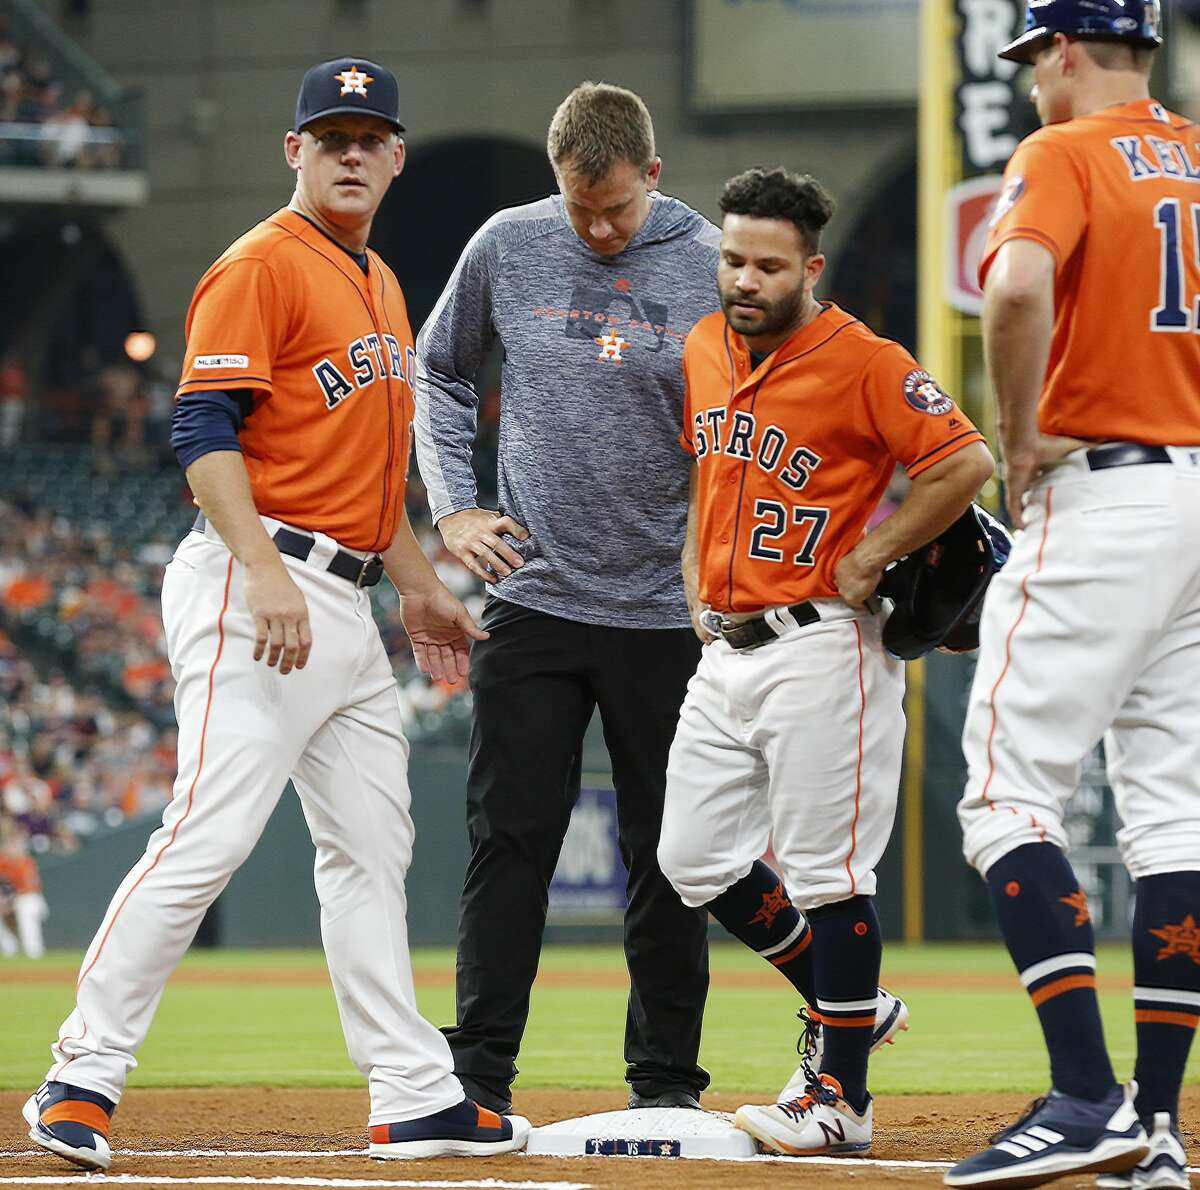 Jose Altuve, 2B, hamstring Atluve appeared almost ready to return from the hamstring injury that landed him on the injured list, but he reported